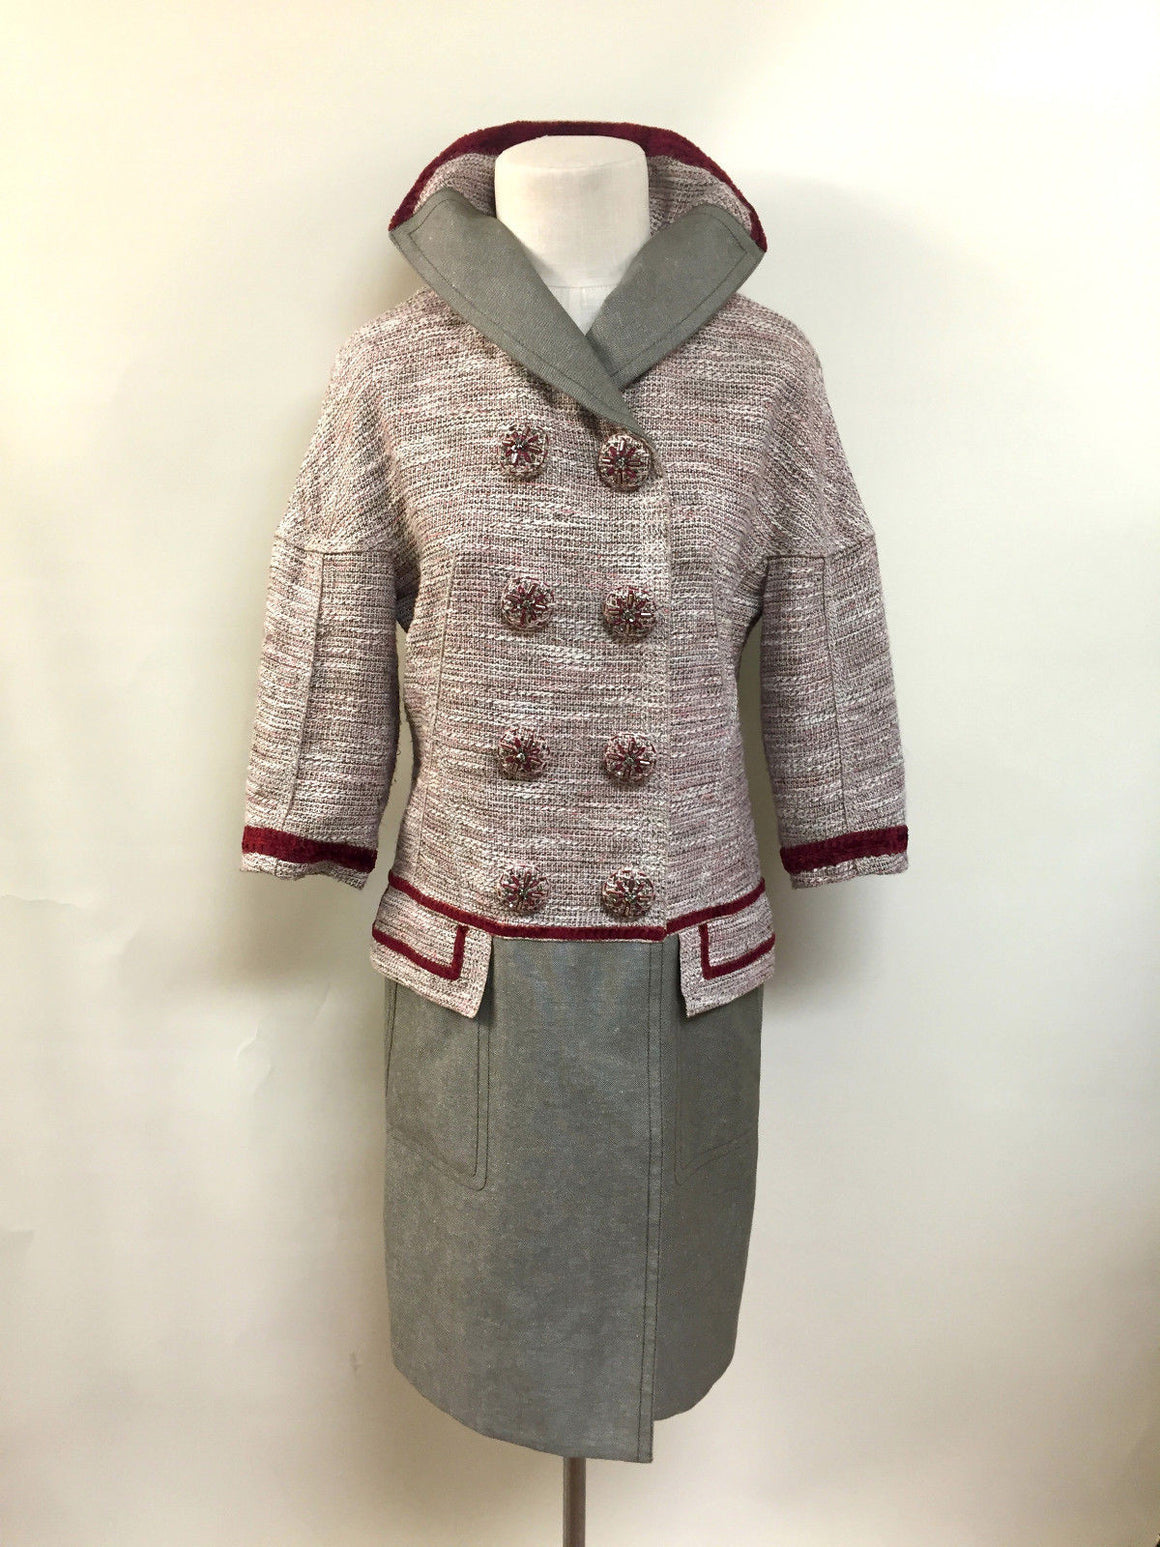 bisbiz.com LOUIS VUITTON Pink/Ivory/Olive Double-Breasted Dress Coat with Jeweled Buttons Size: FR 36 / US 4 - Bis Luxury Resale